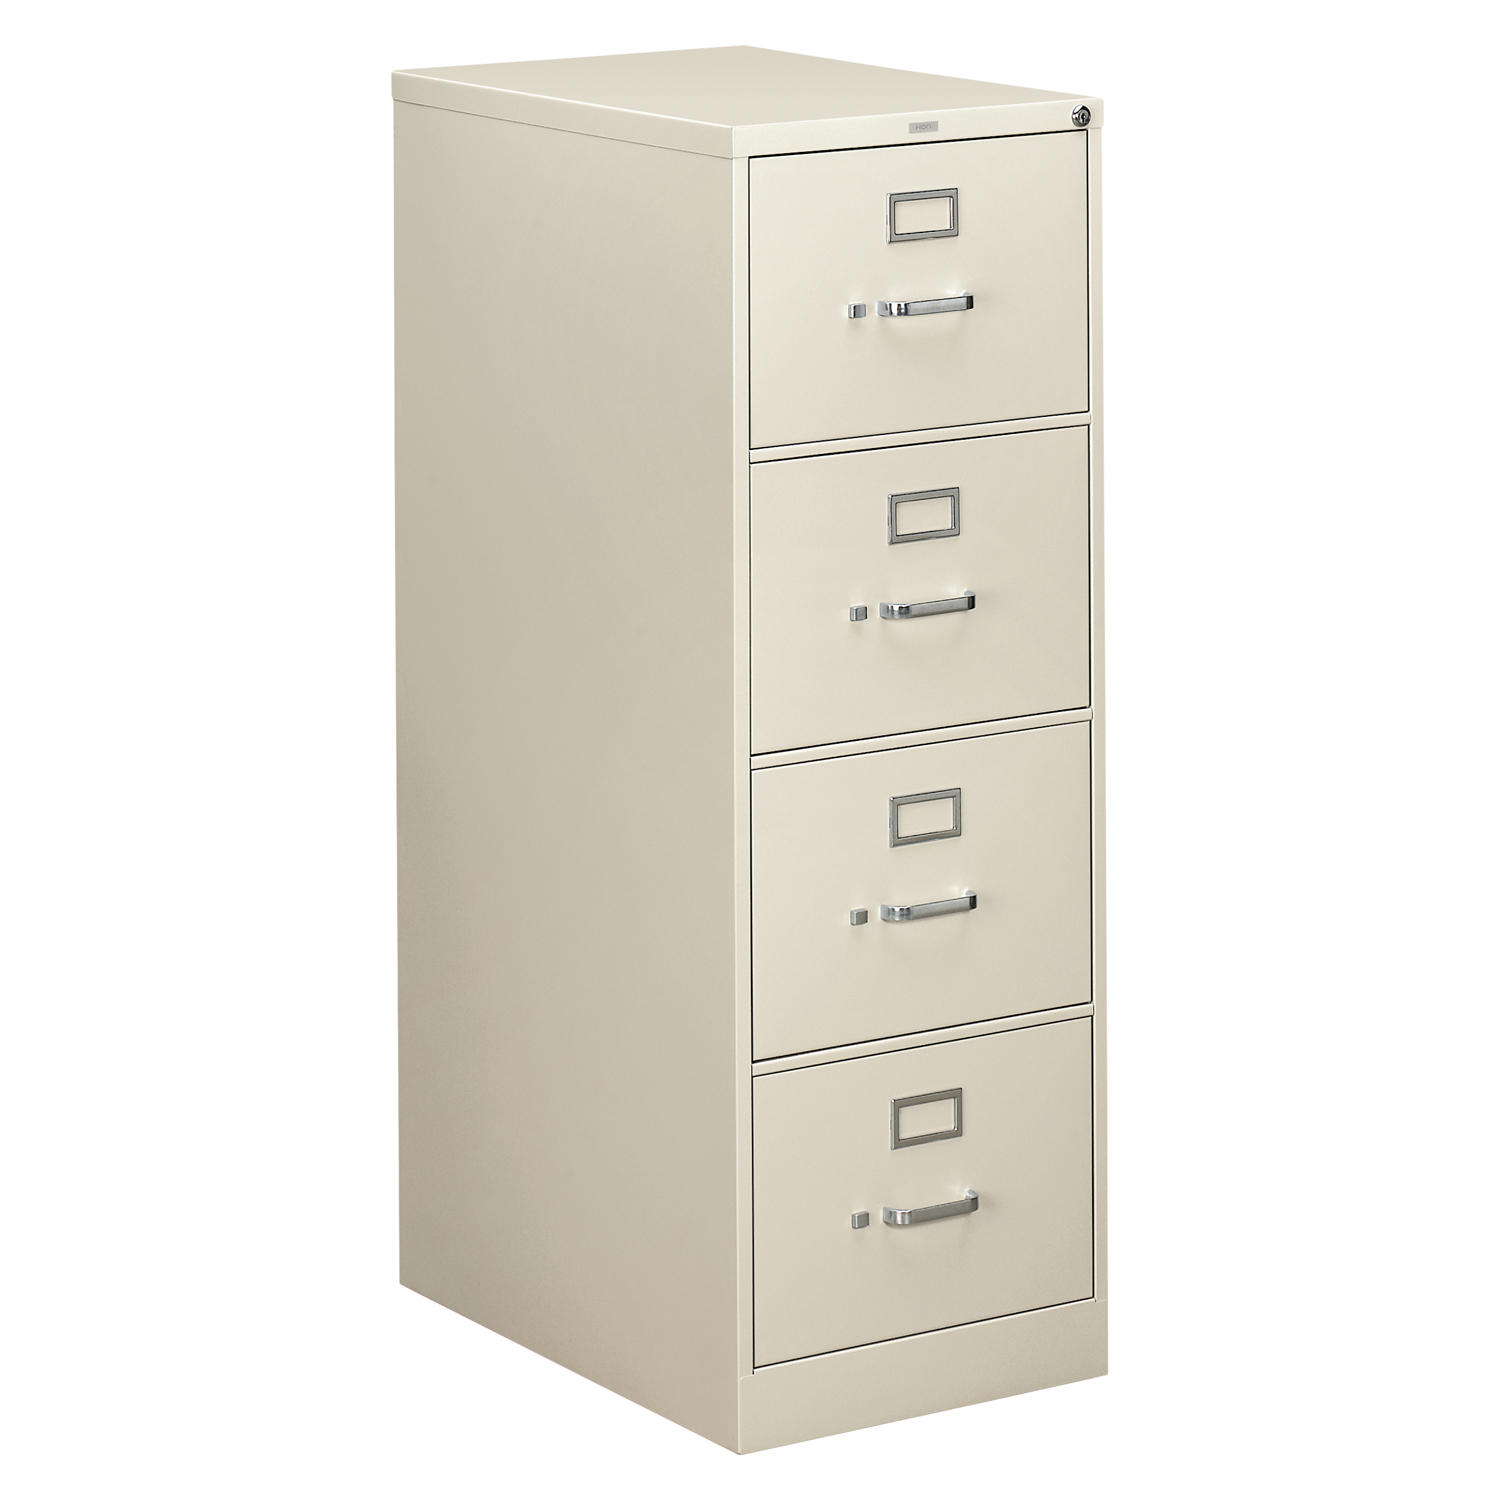 HON 310 Series 4-Drawer Legal File Cabinet, Light Gray